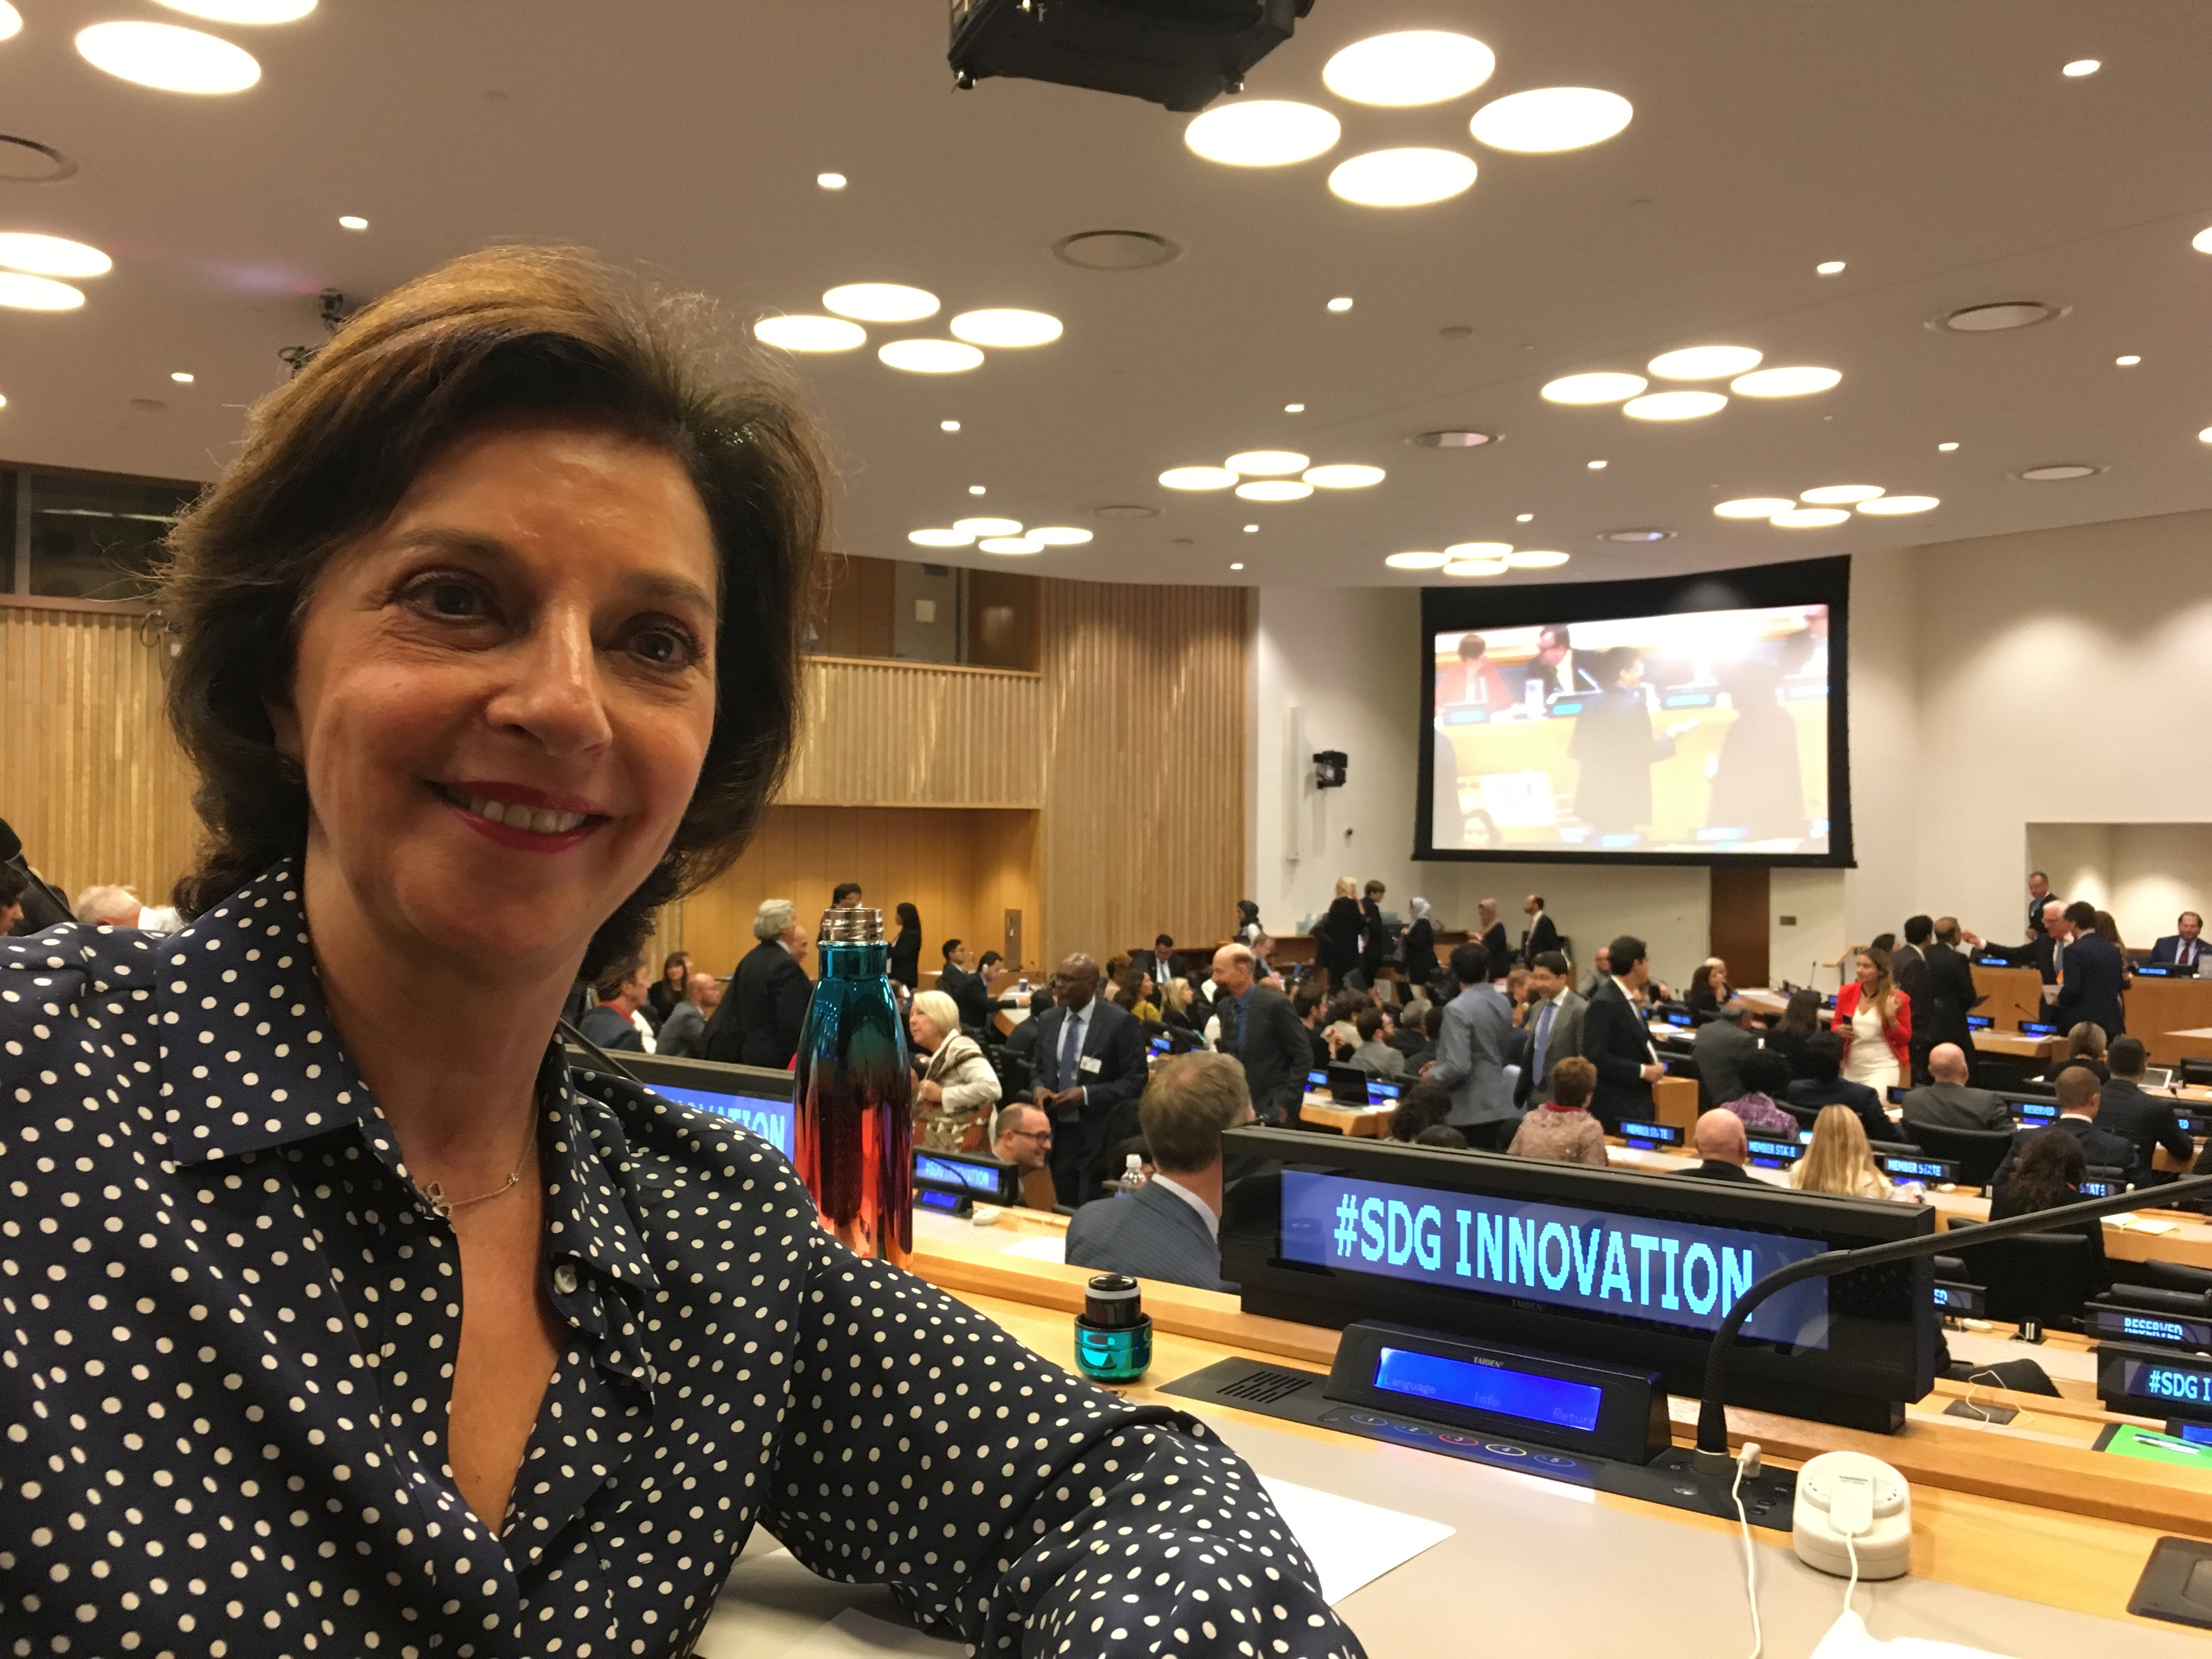 FLC Co-founder Attends Technology Event at the United Nations